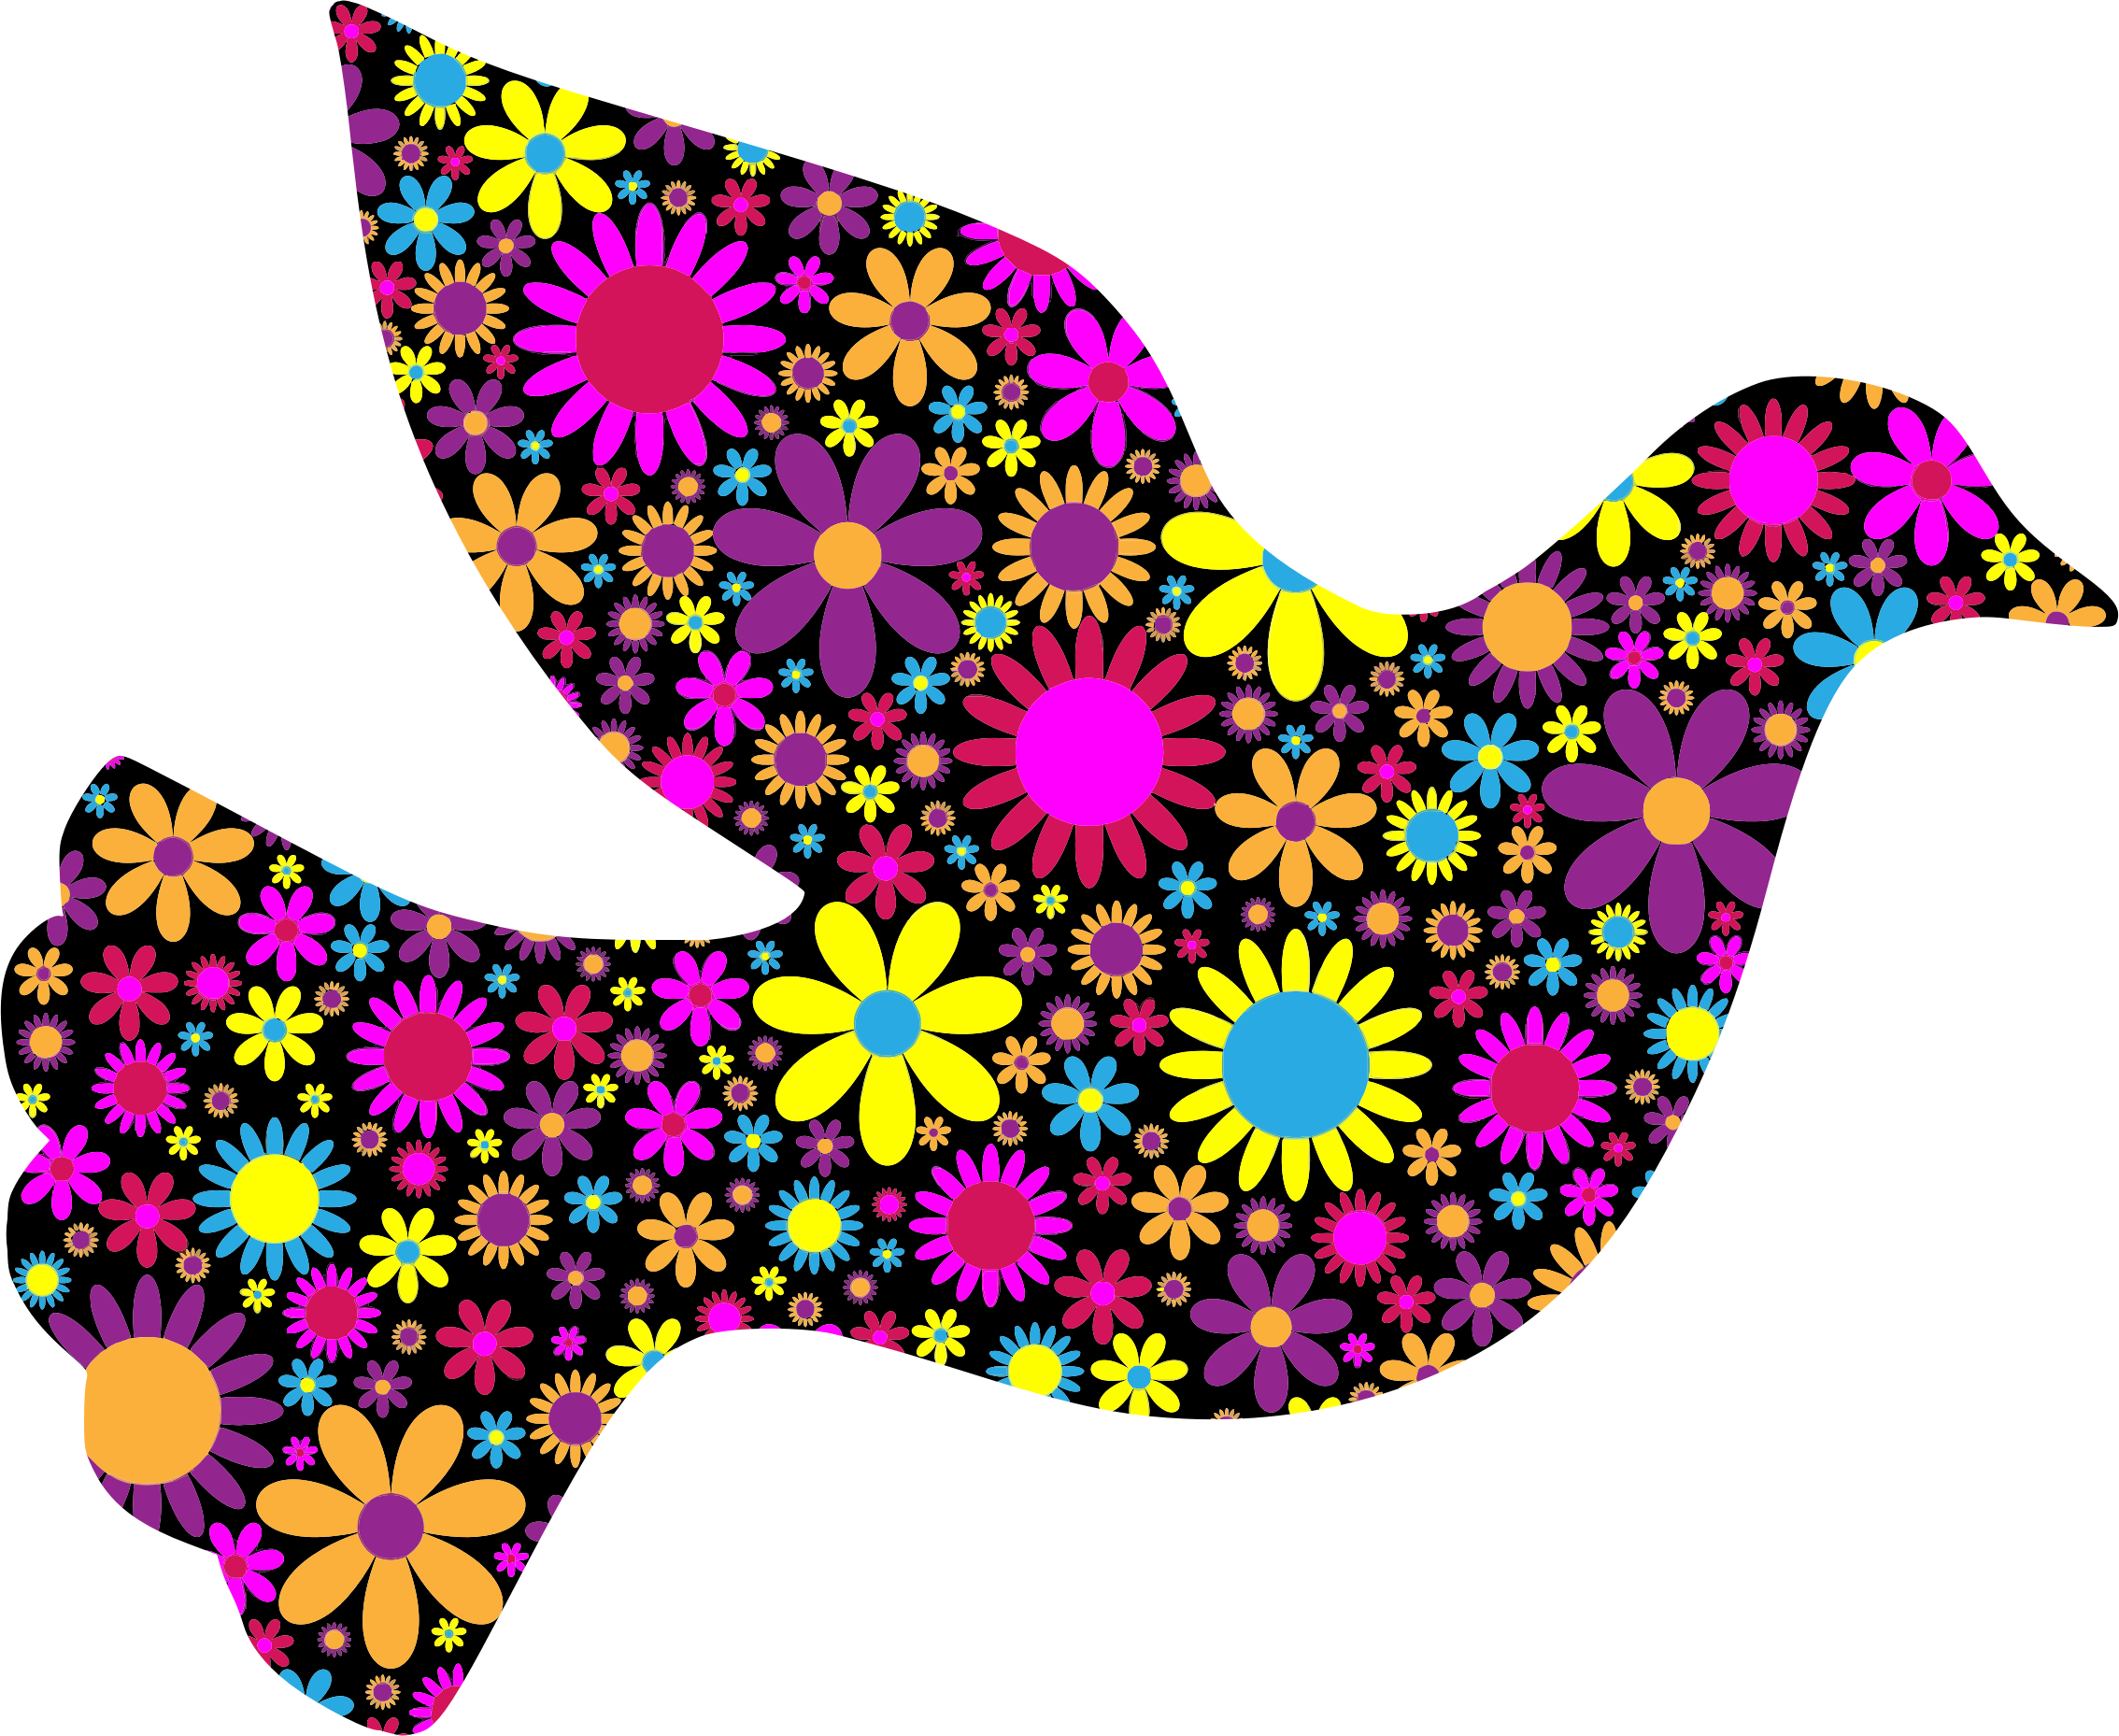 2268x1858 Floral Peace Dove 2 By @gdj, Floral Peace Dove 2, On @openclipart